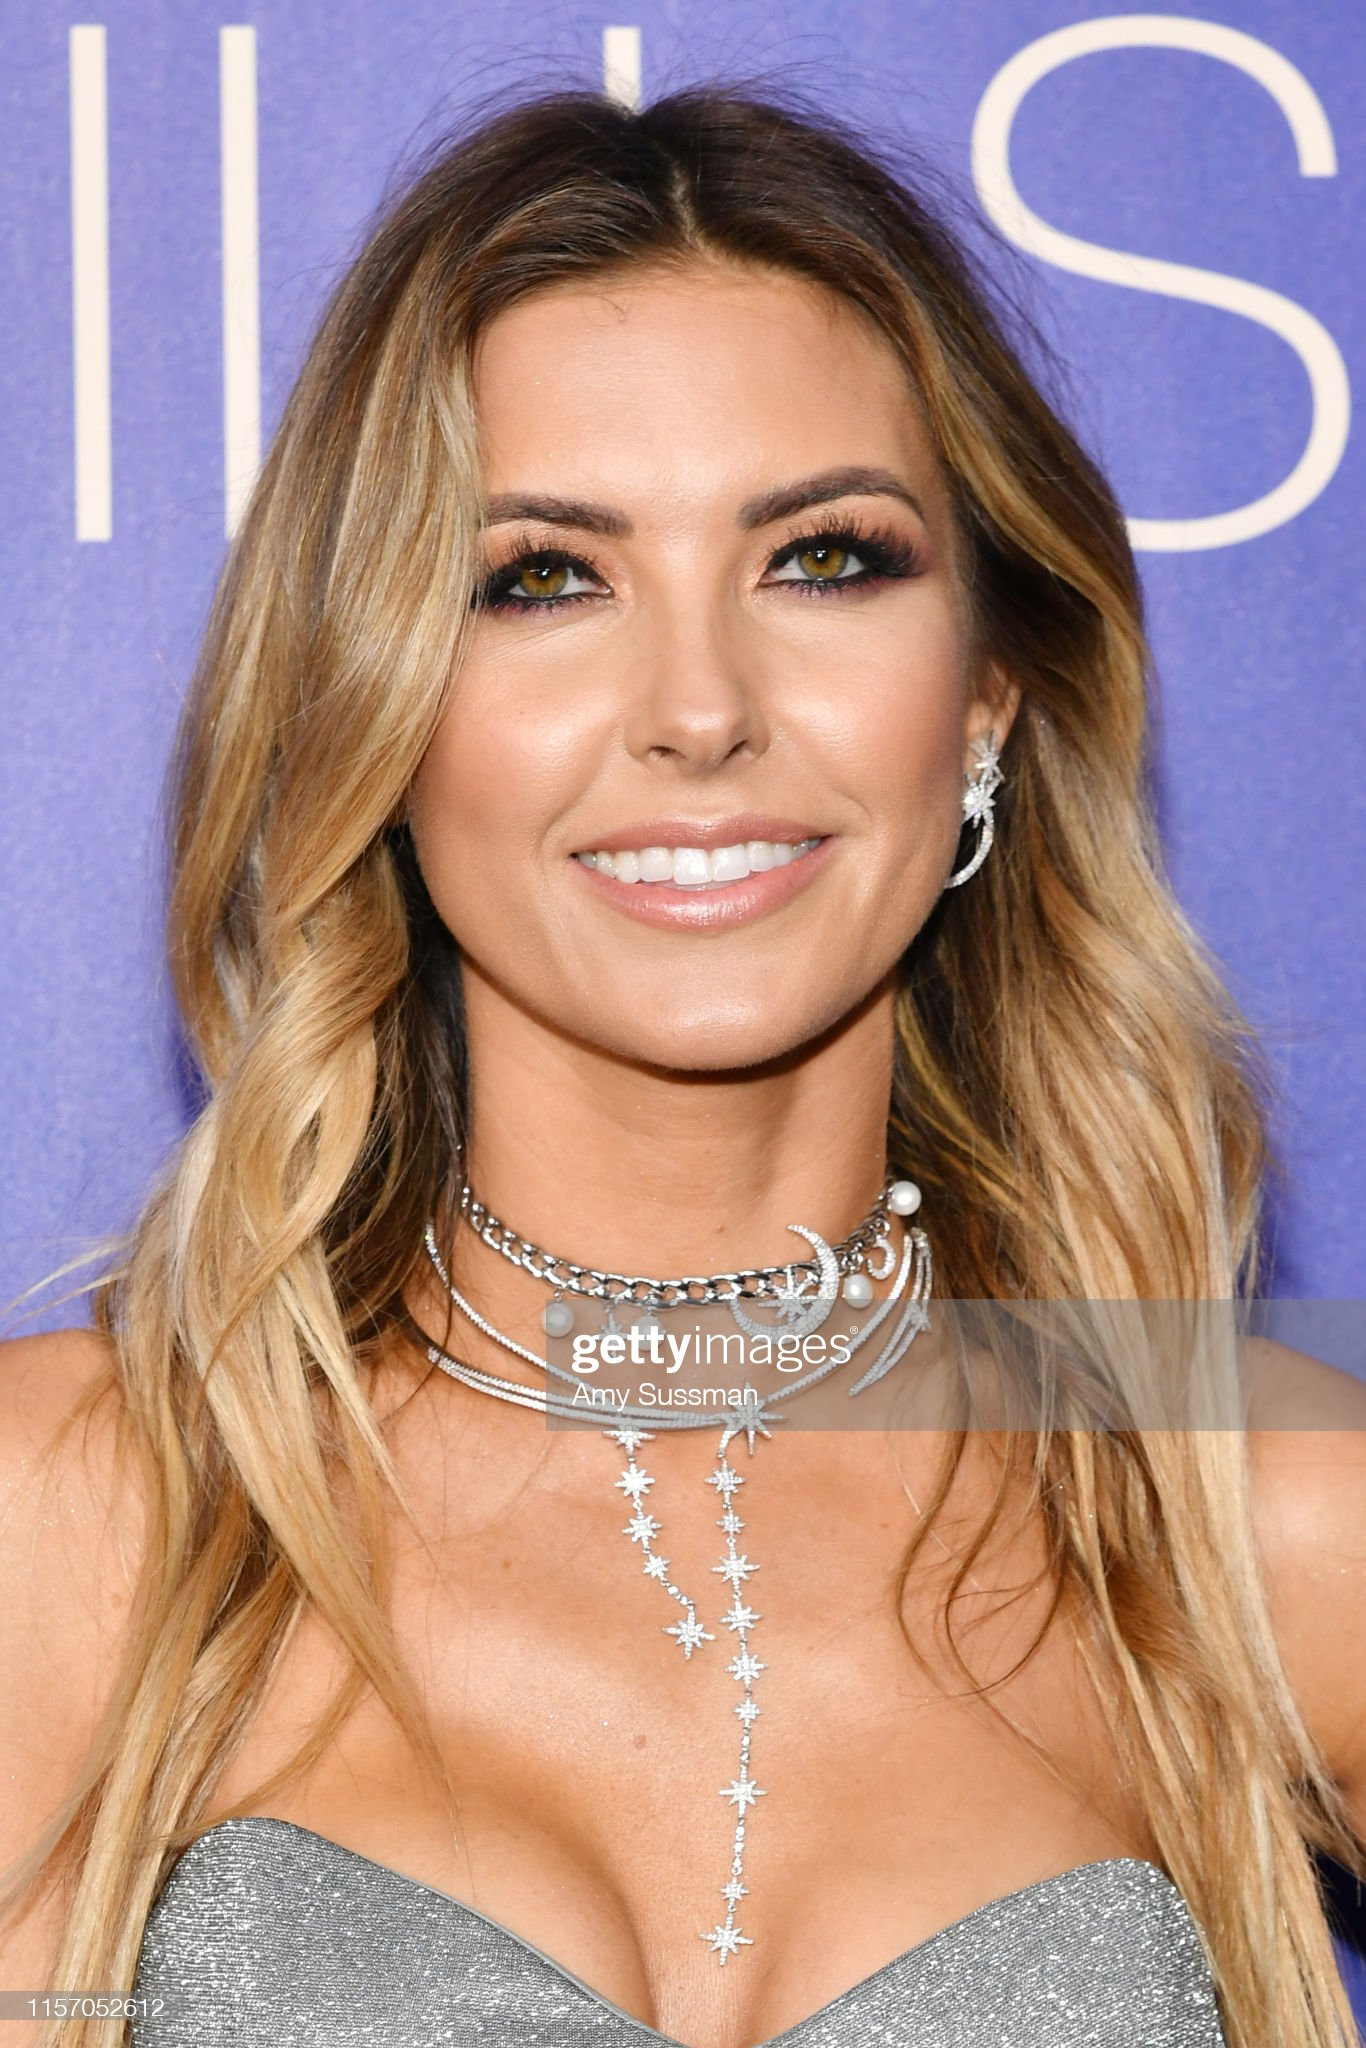 COLOR DE OJOS (clasificación y debate de personas famosas) Audrina-patridge-attends-the-premiere-of-mtvs-the-hills-new-at-on-picture-id1157052612?s=2048x2048